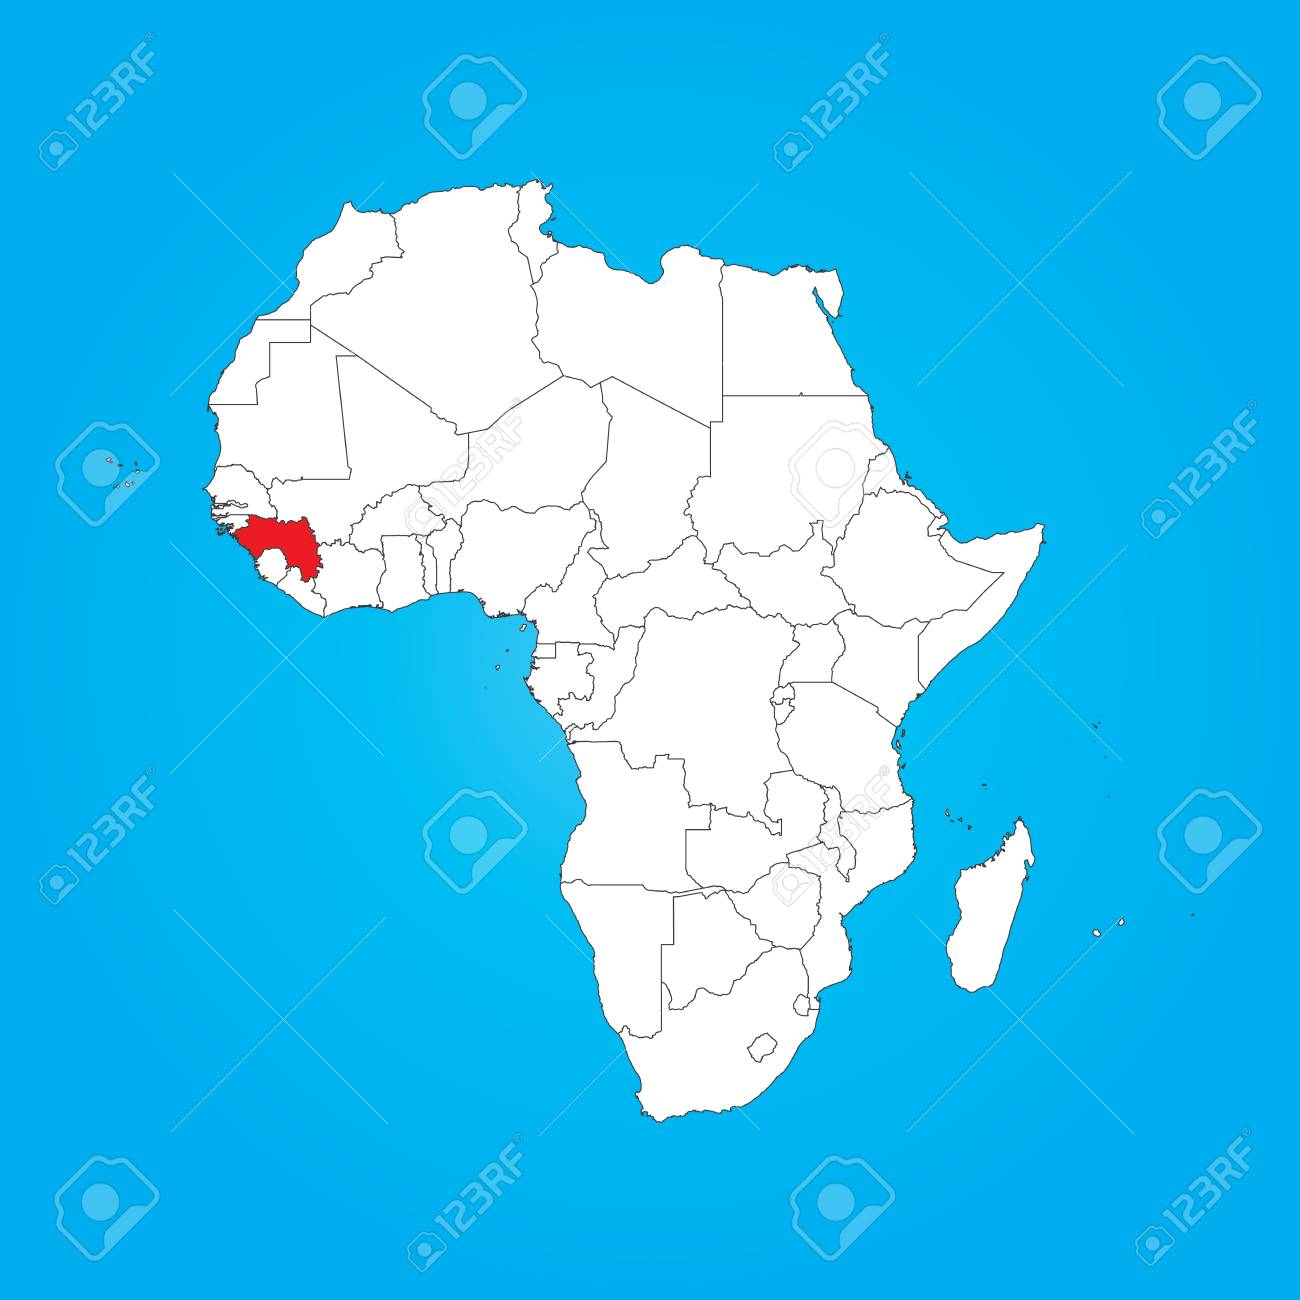 A Map Of Africa With A Selected Country Of Guinea Stock Photo